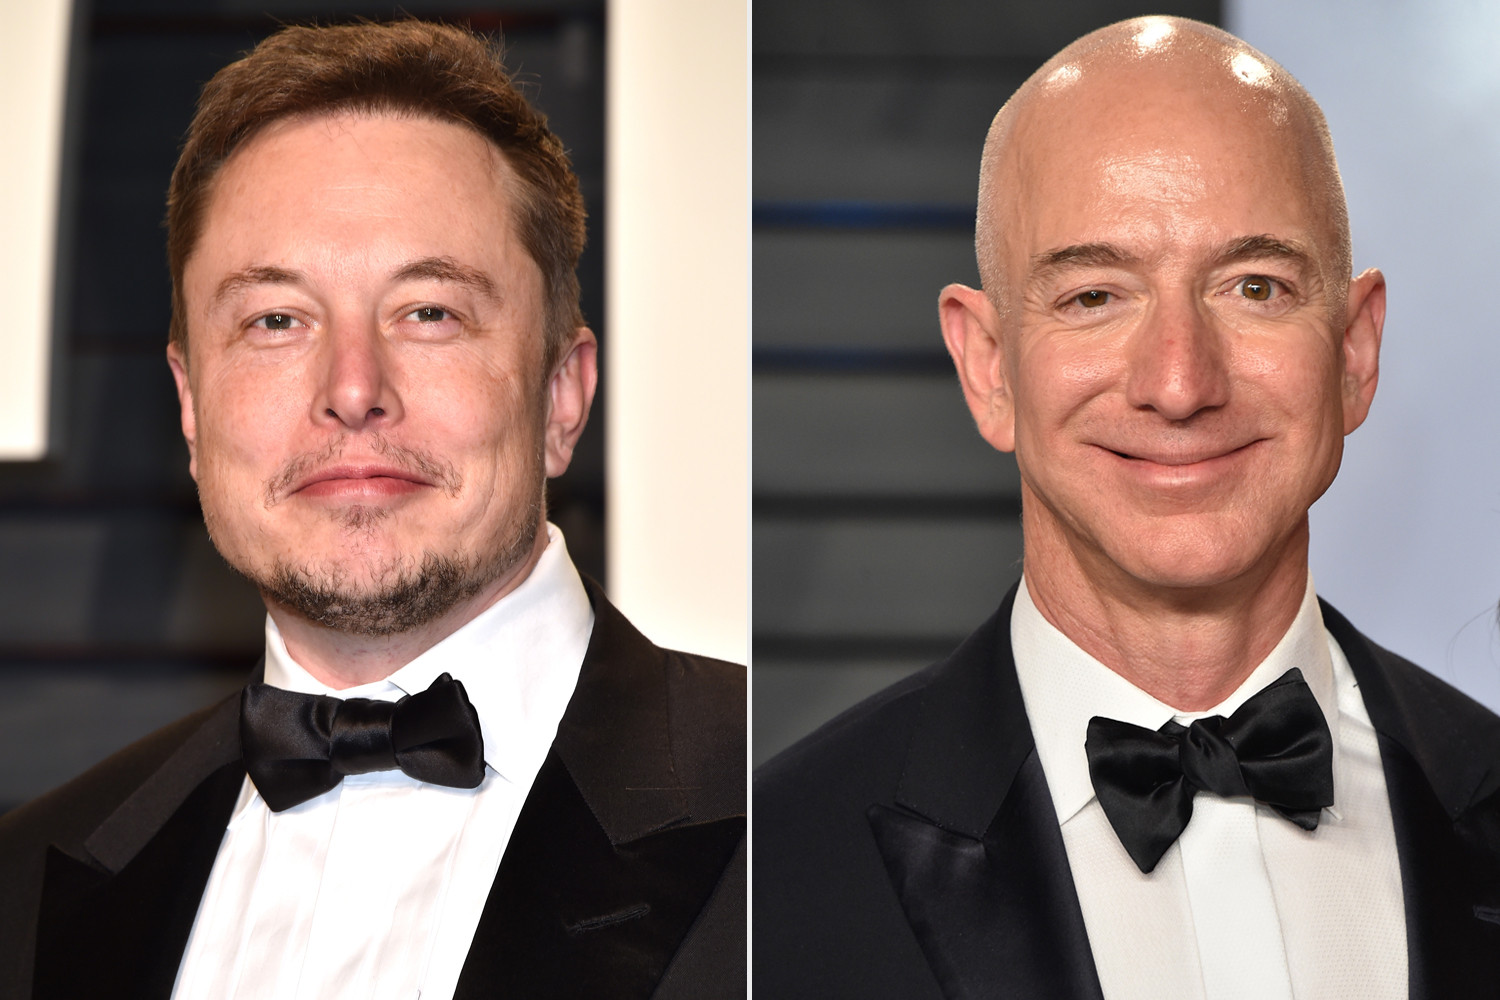 Elon Musk loses $27billion in just one week and falls behind Jeff Bezos to become the world's second-richest man